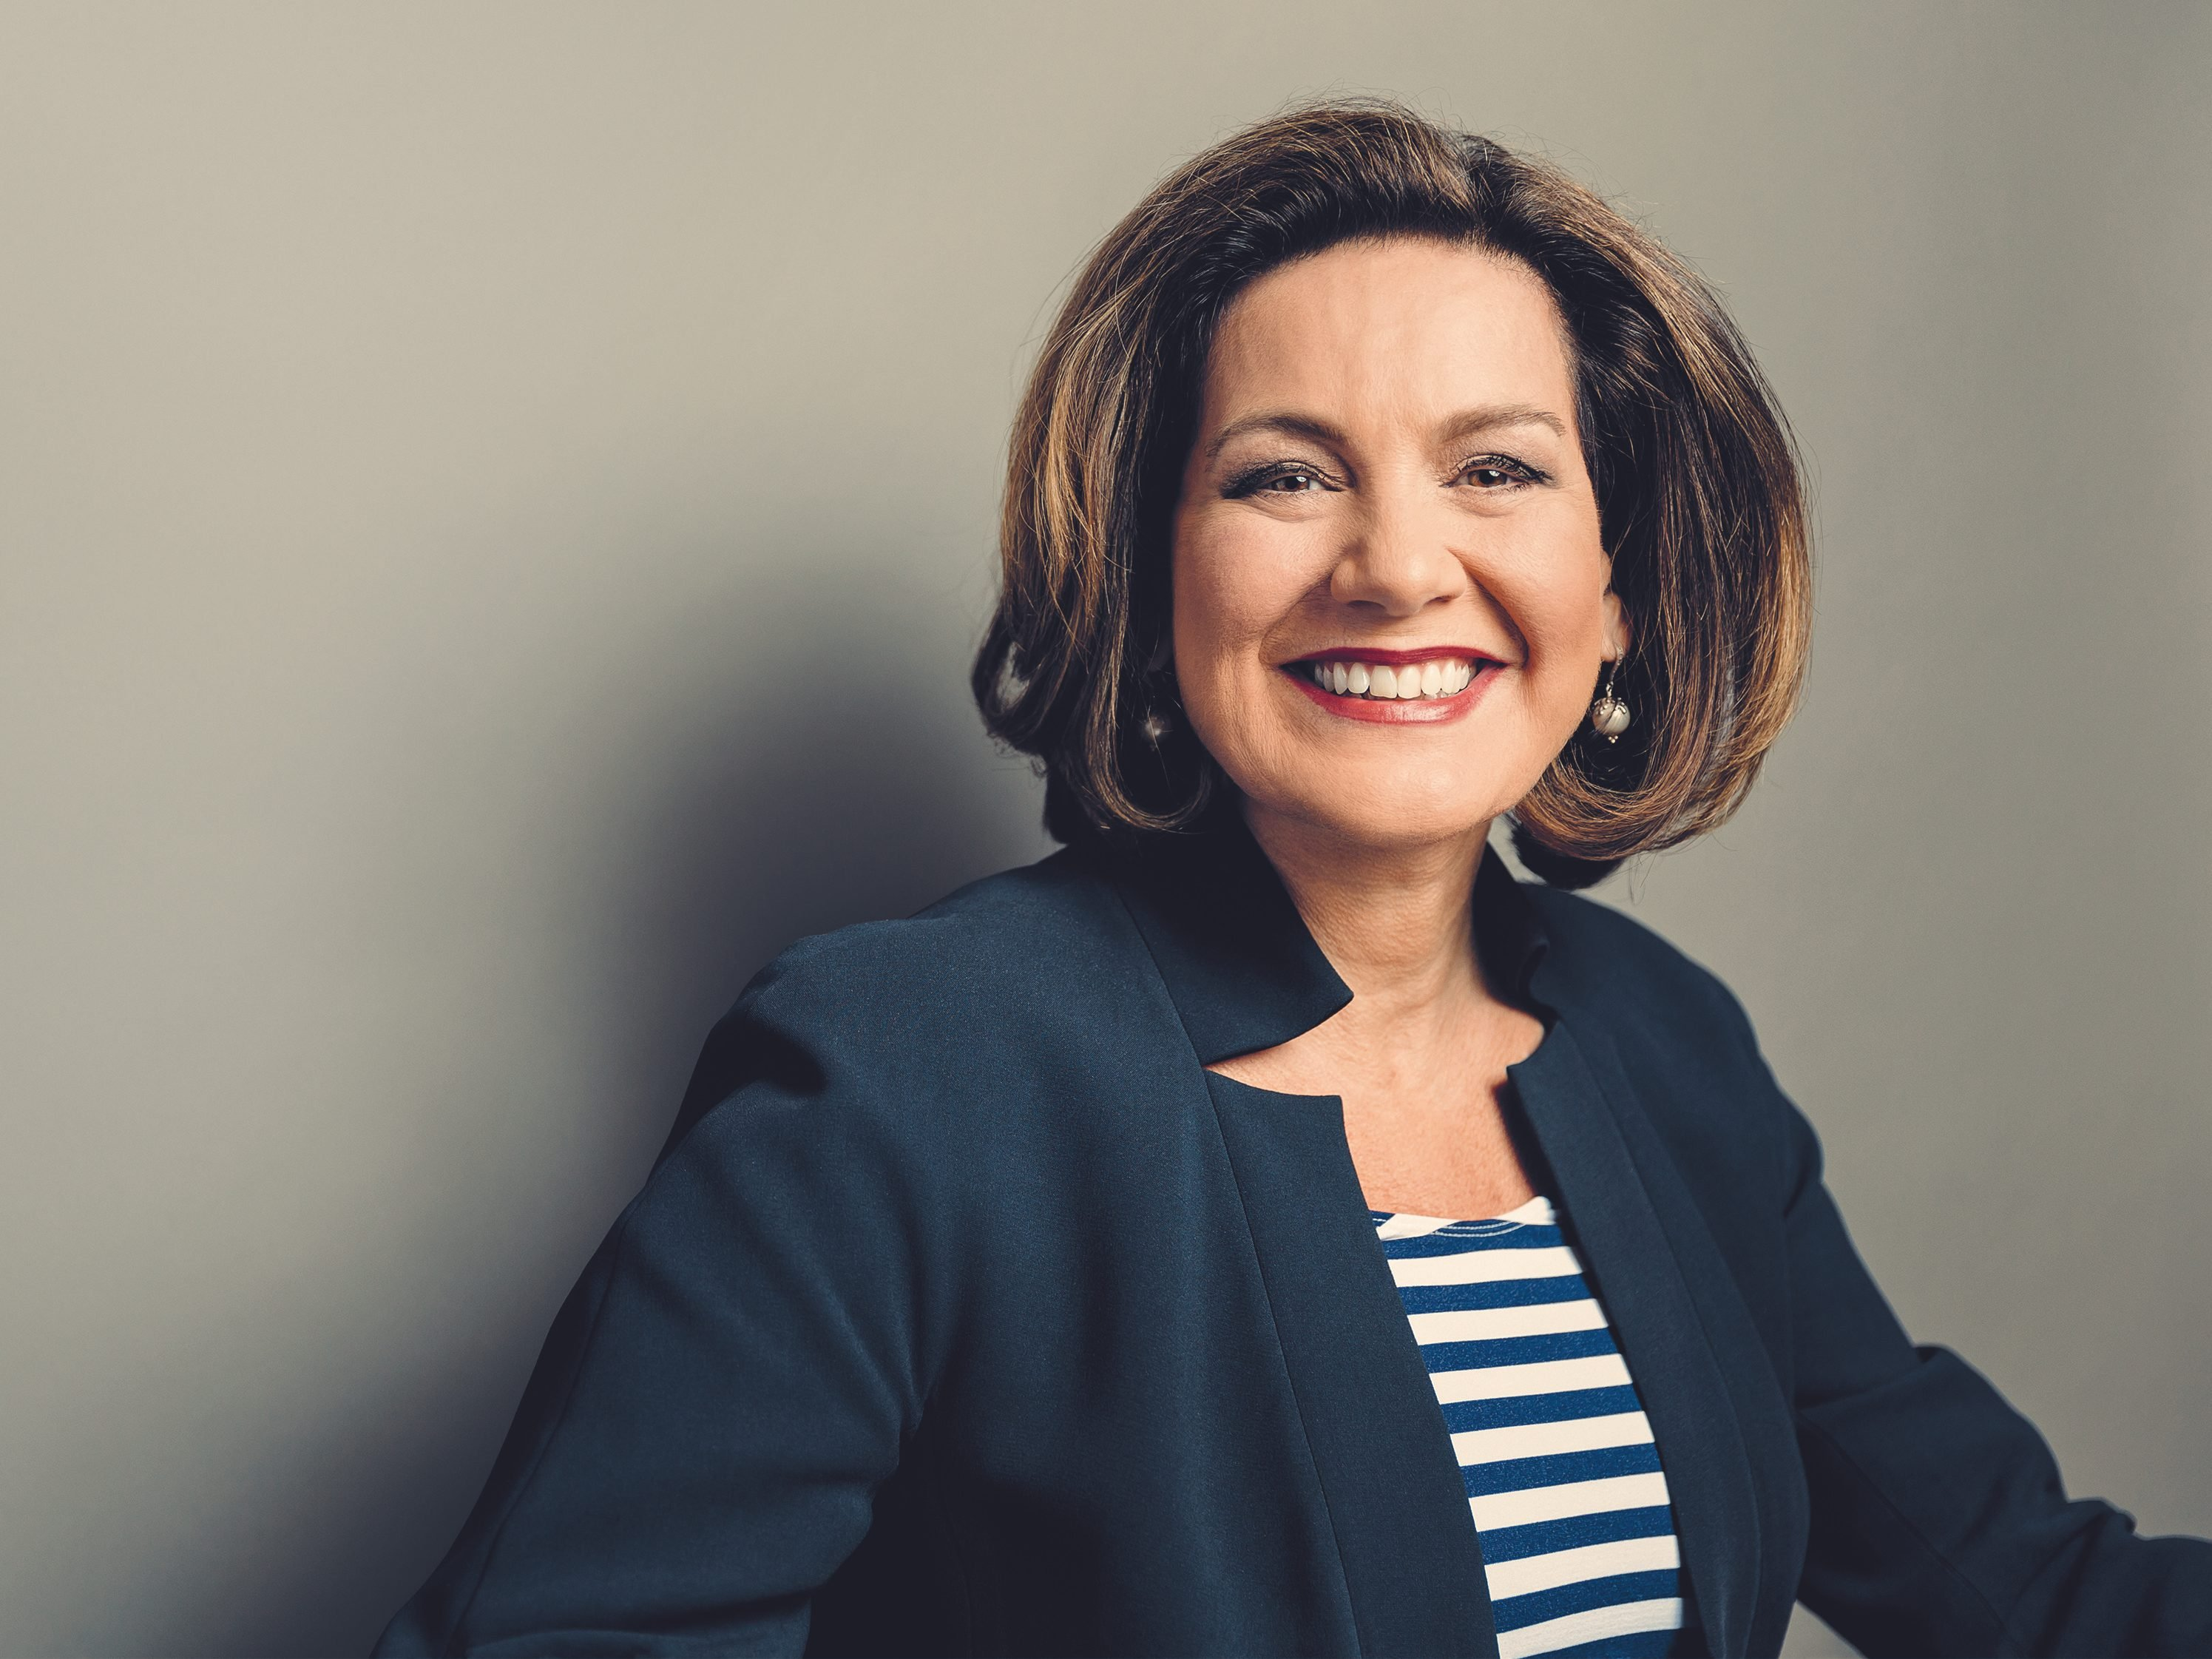 Reporting For Duty: In Conversation With Lisa LaFlamme